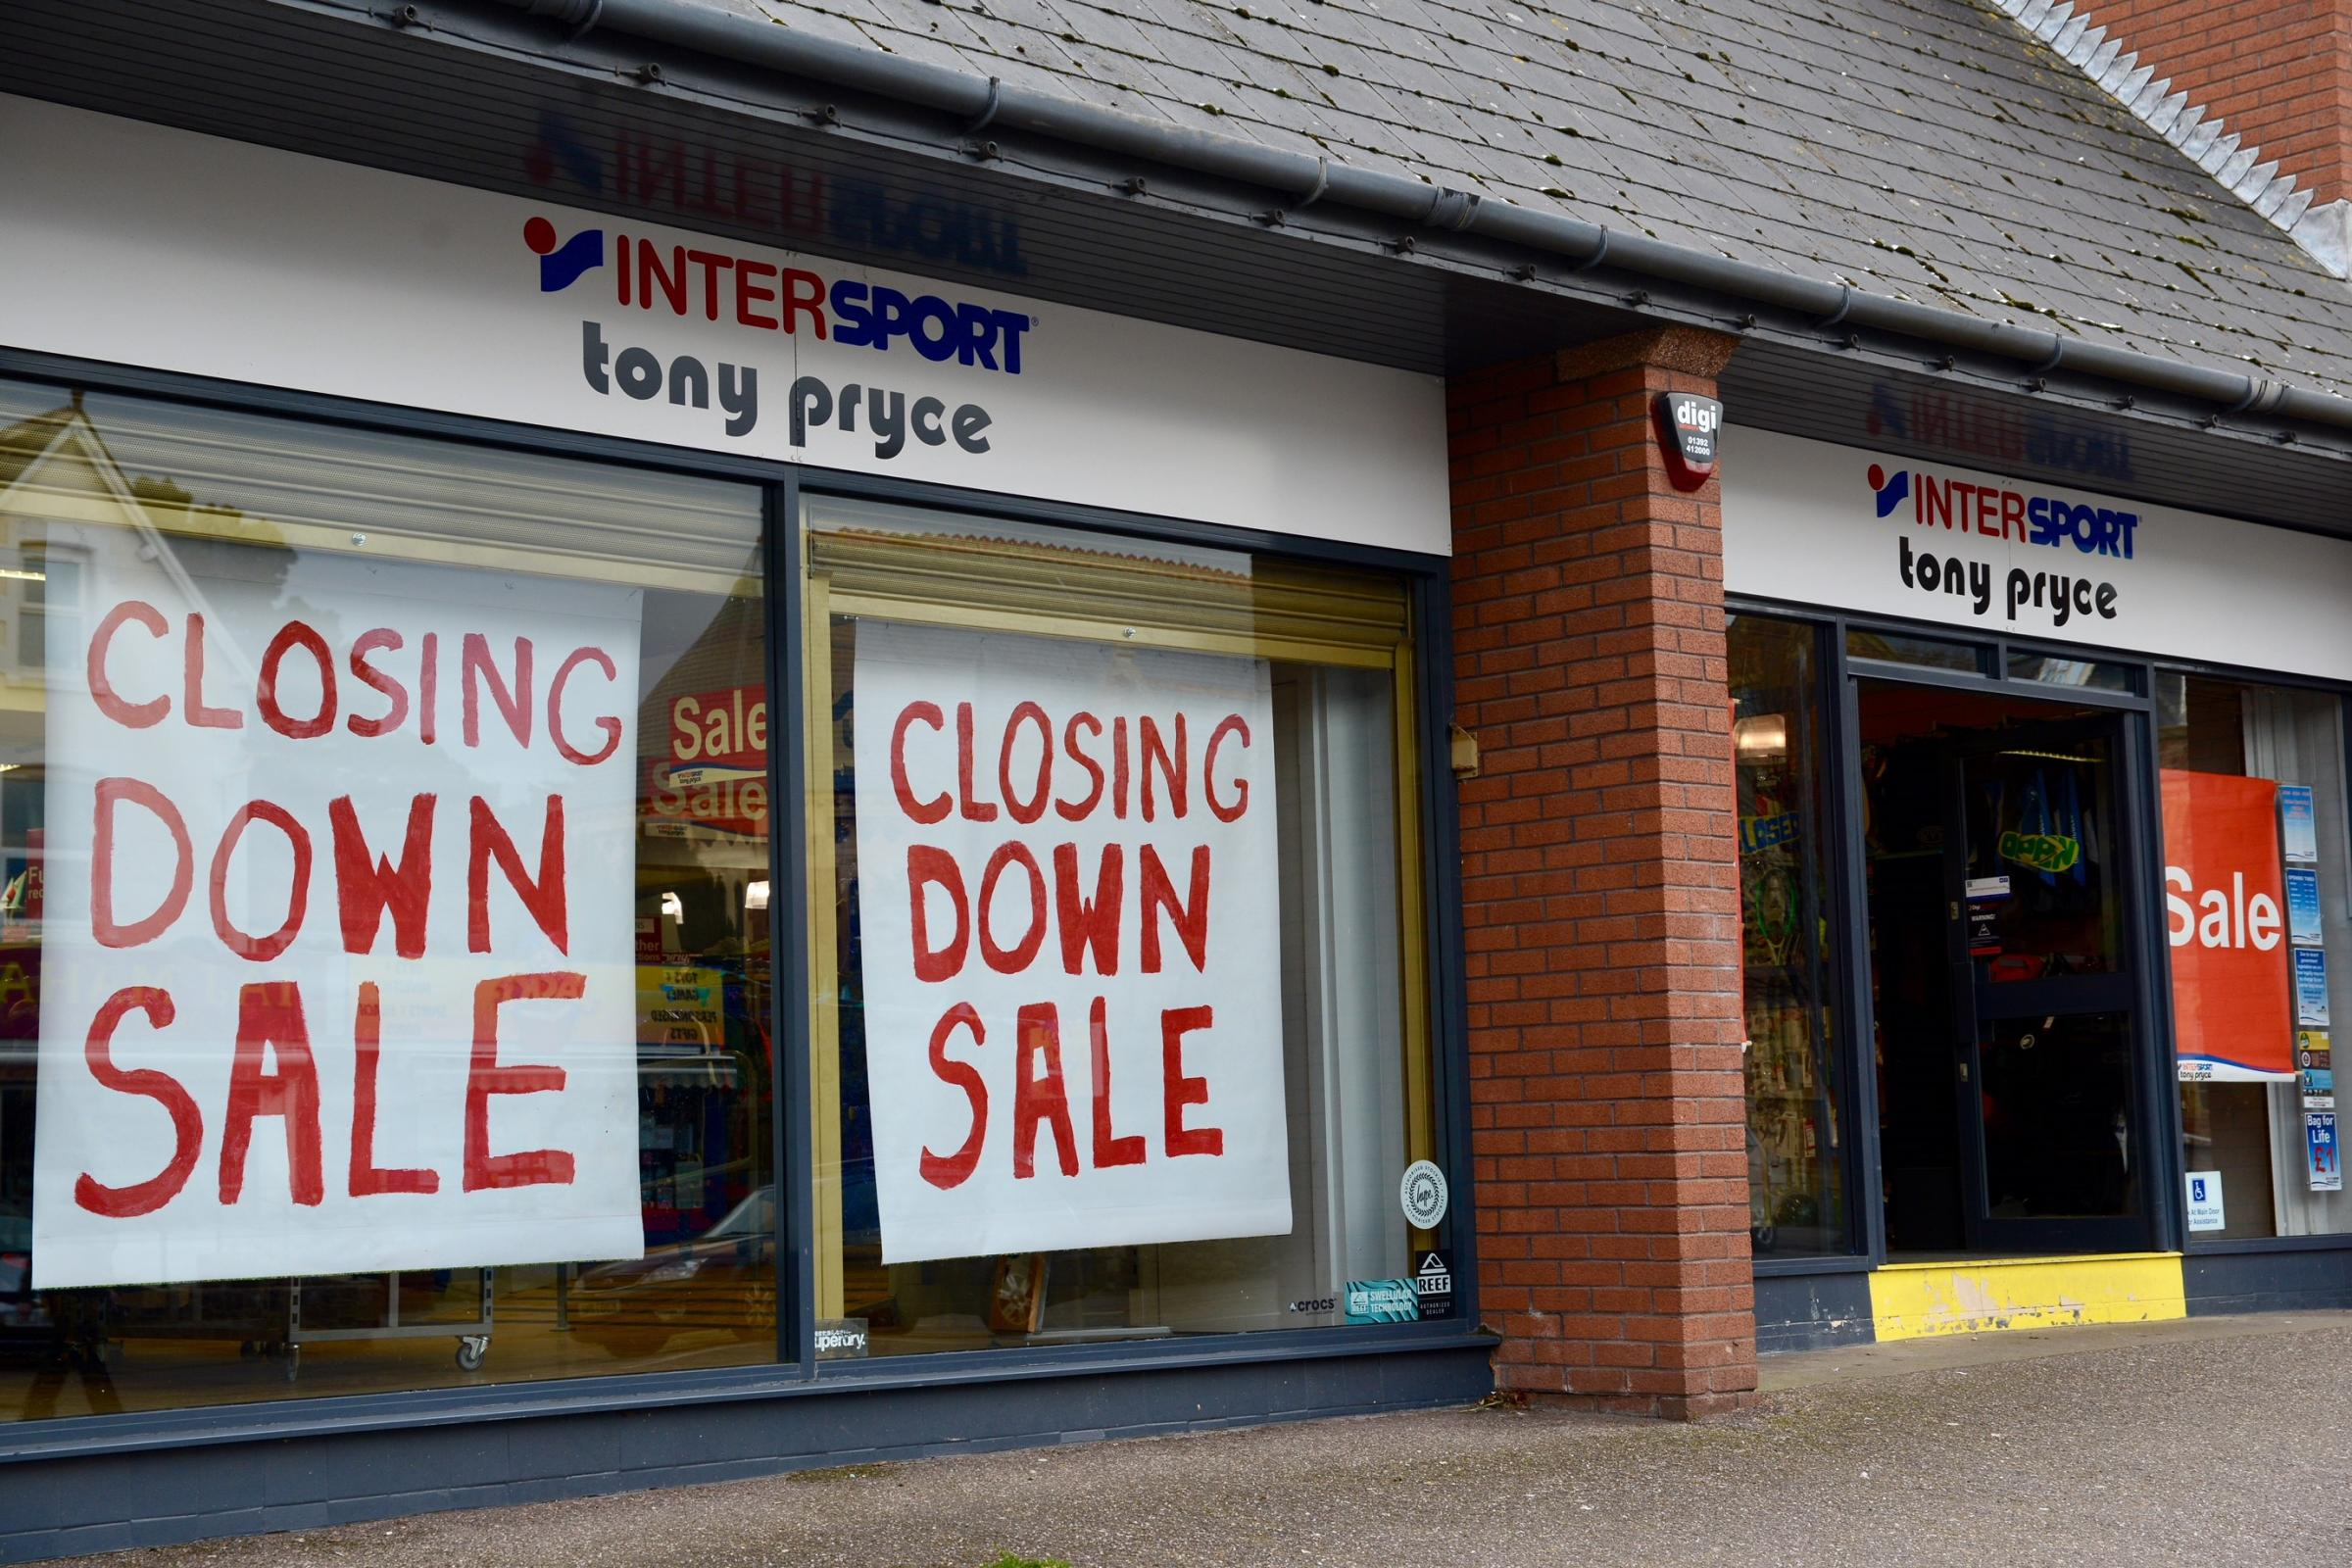 Intersport Salon Tony Pryce Sports Shop In Minehead Set To Close After 40 Years Of